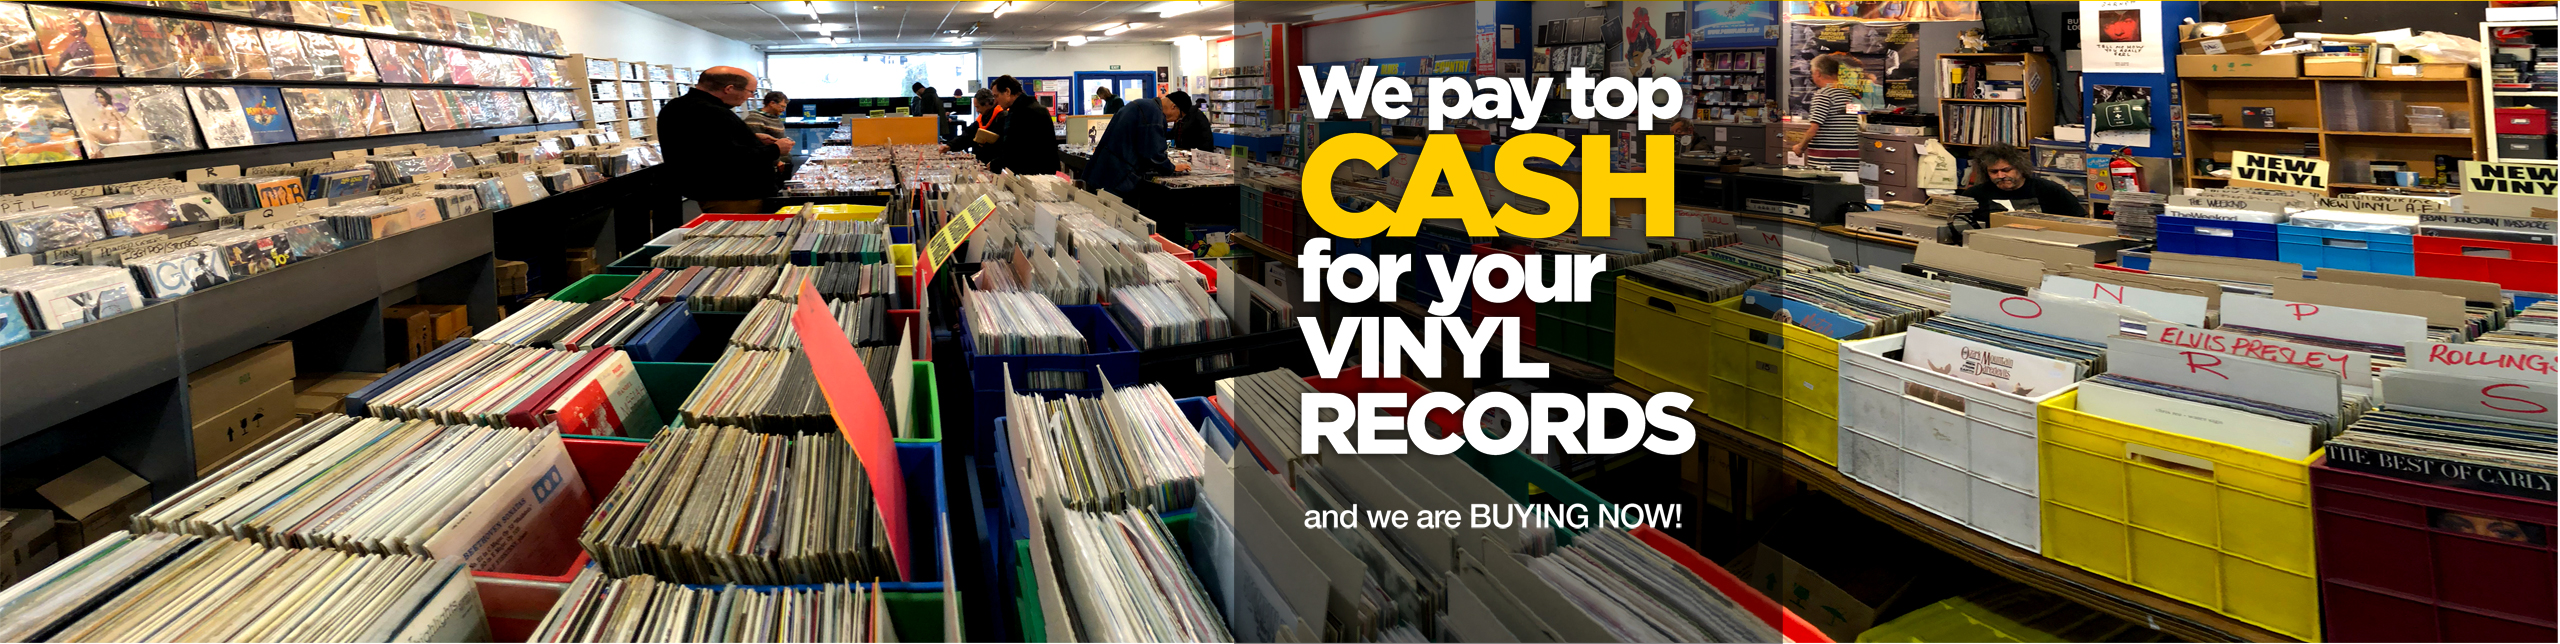 Penny Lane Values Your Record Collection and Collectibles - Best